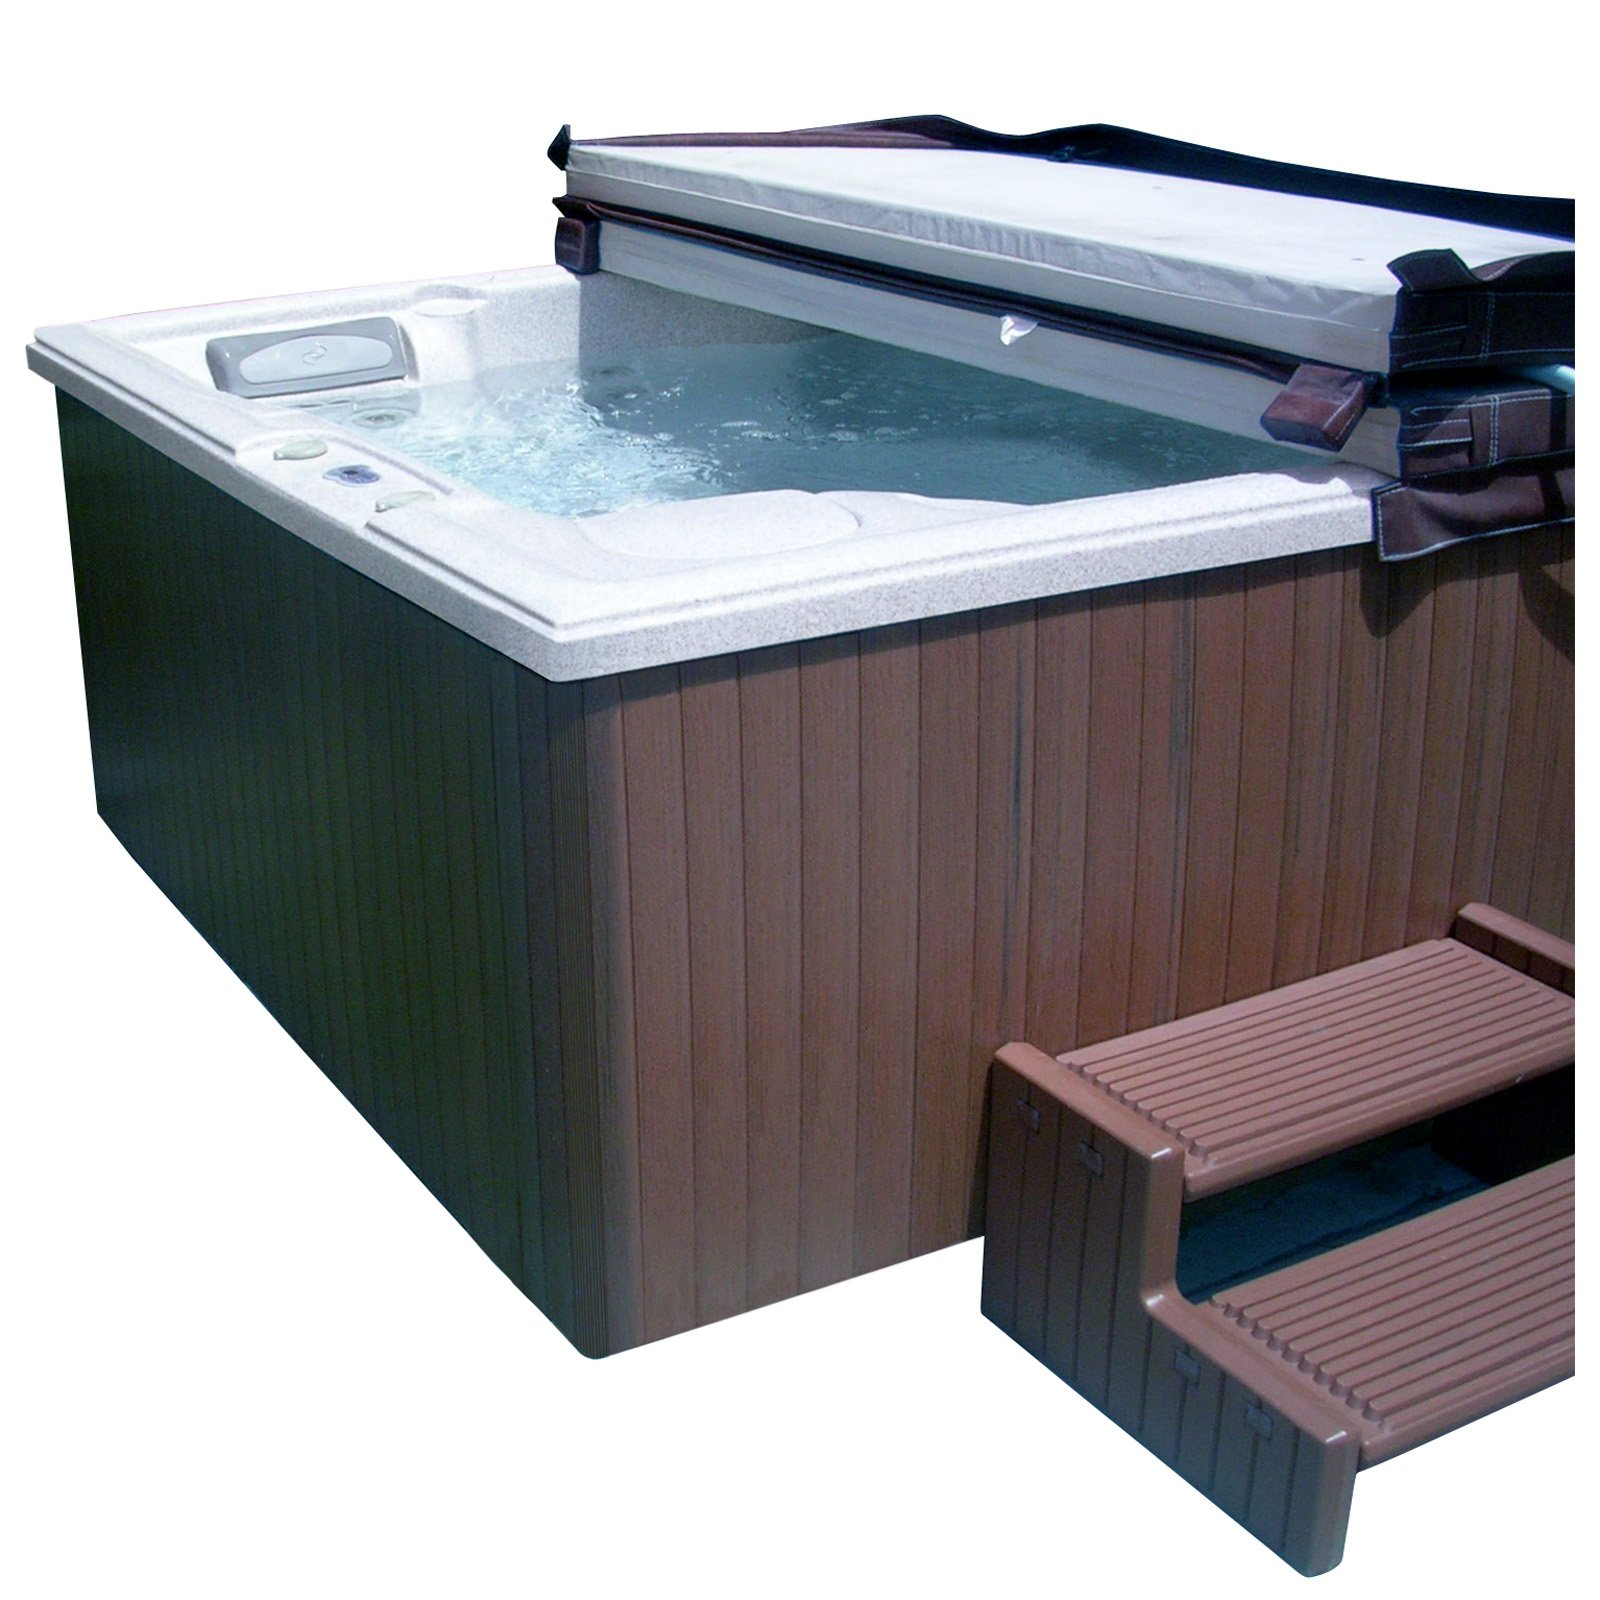 Highwood Spa and Hot Tub Cabinet Replacement Kit Cover